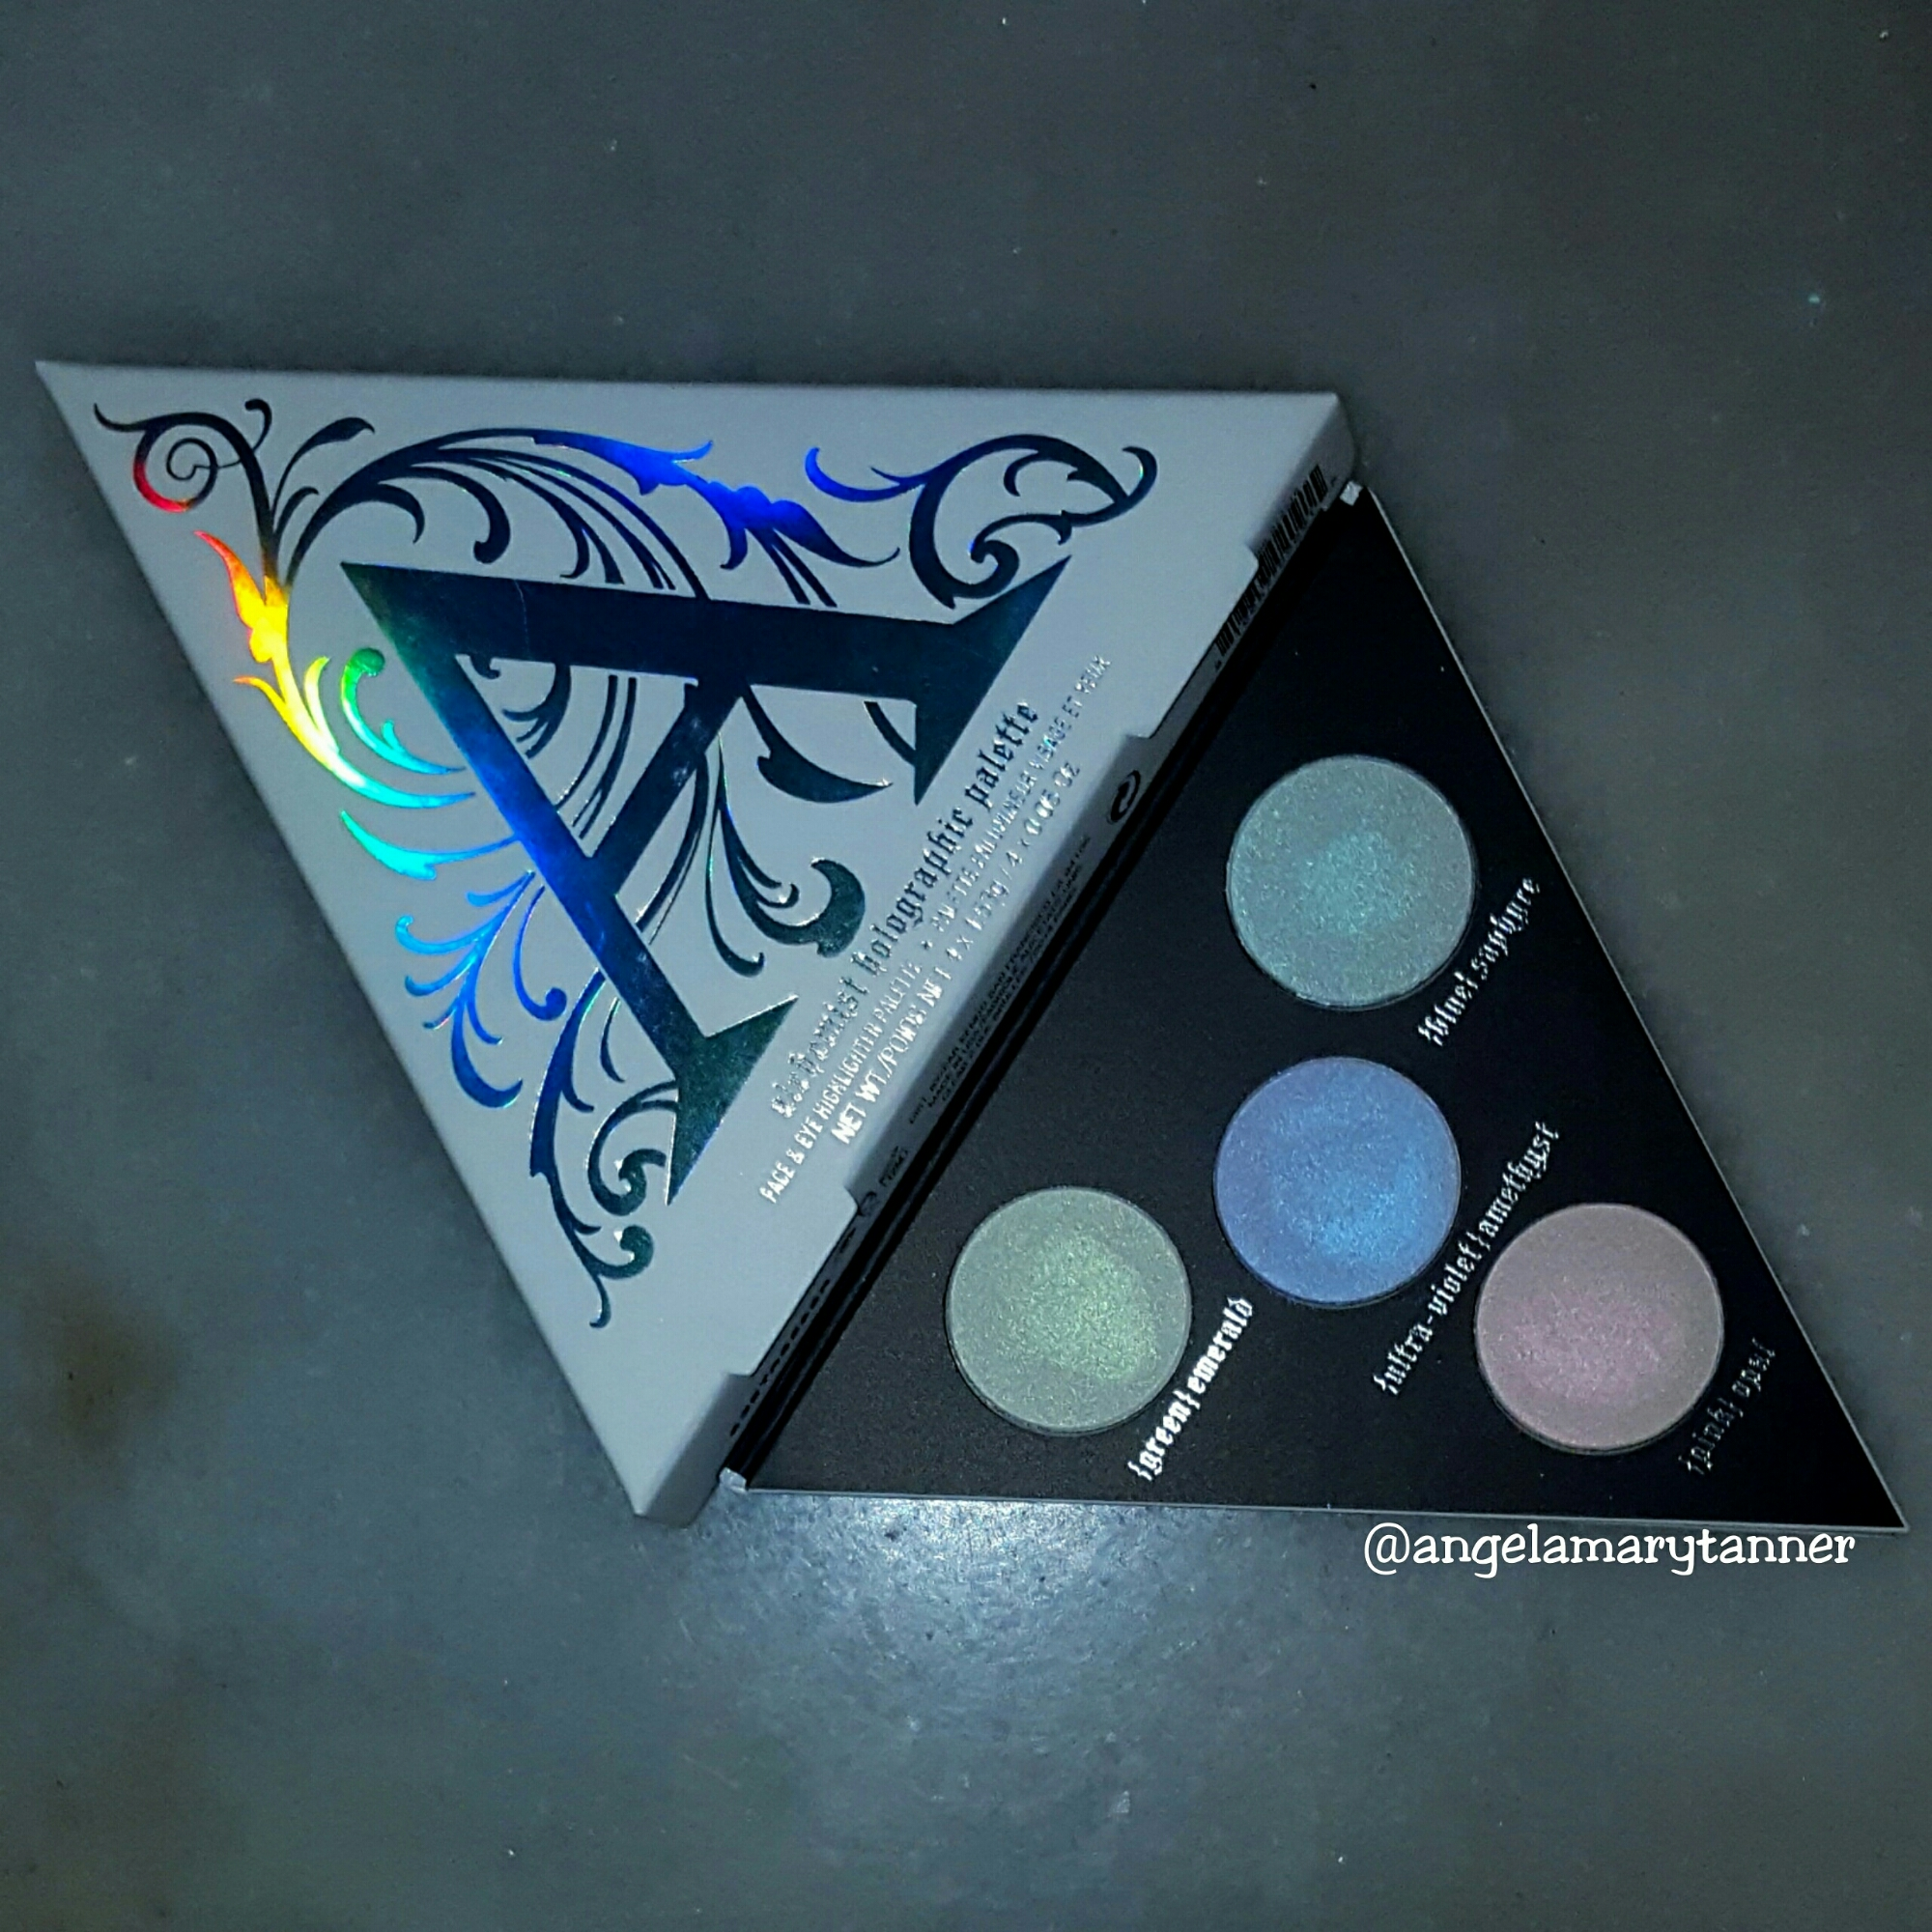 kat von d alchemist holographic palette review and swatches 32